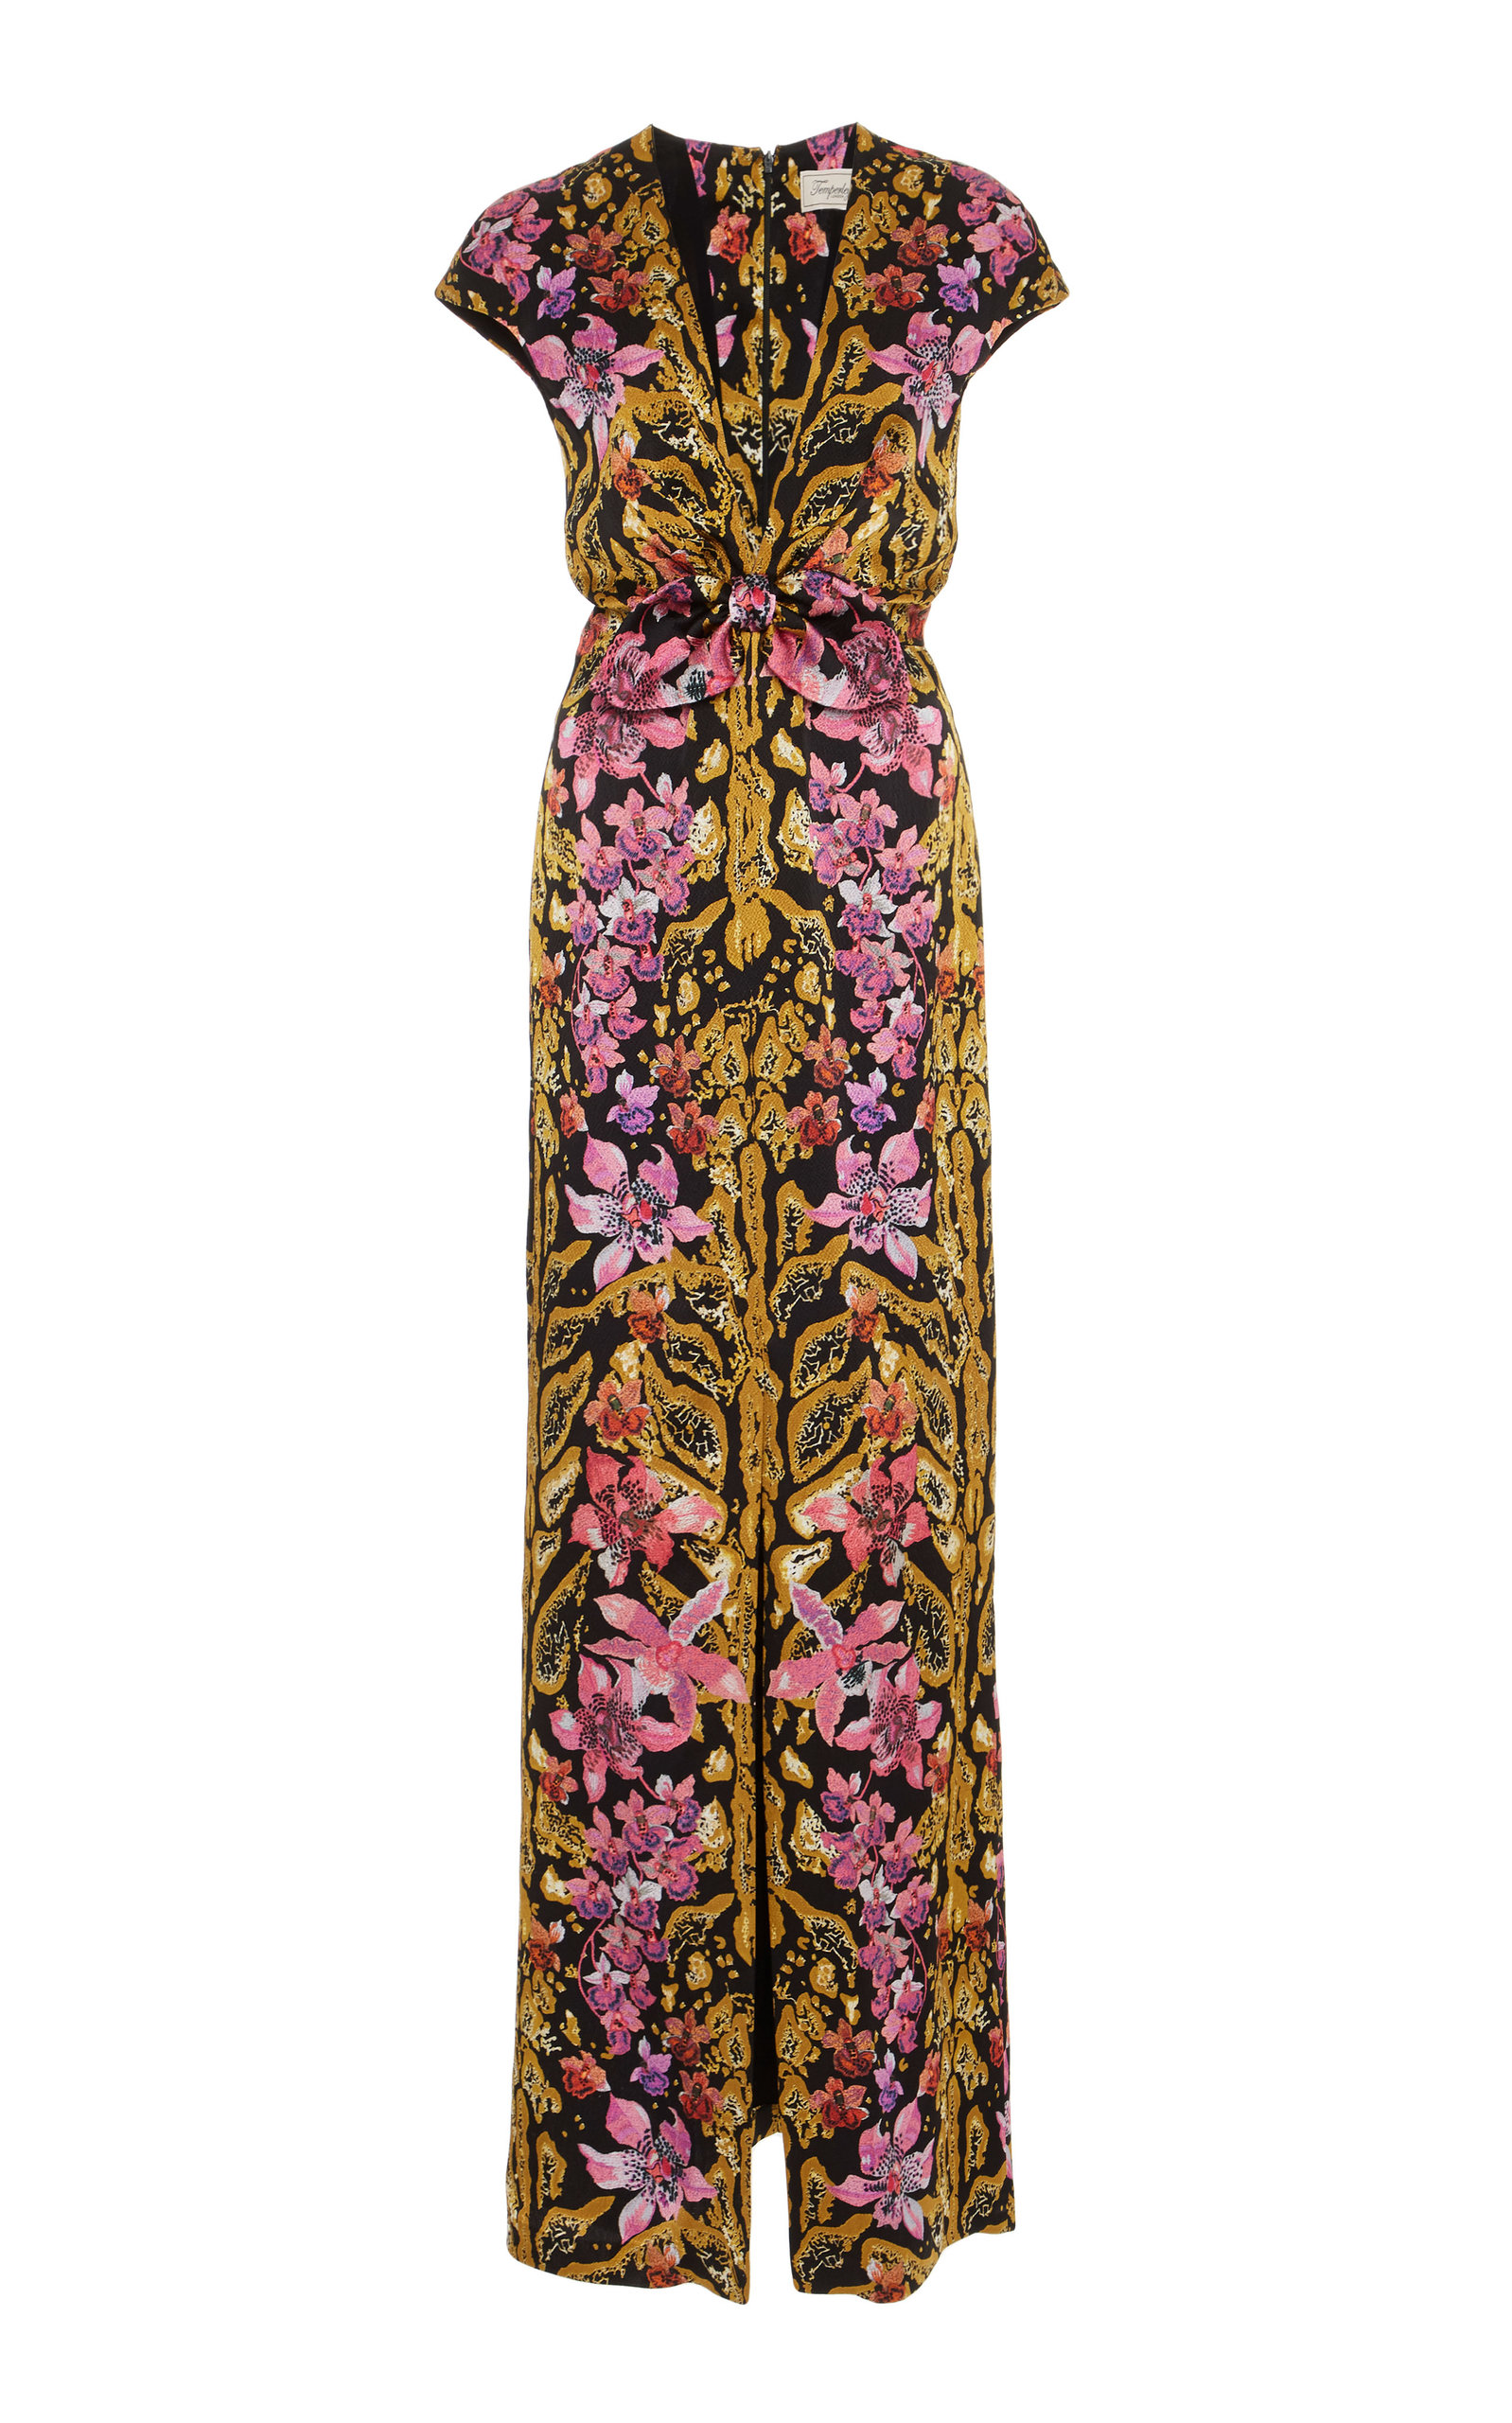 floral printed knotted dress